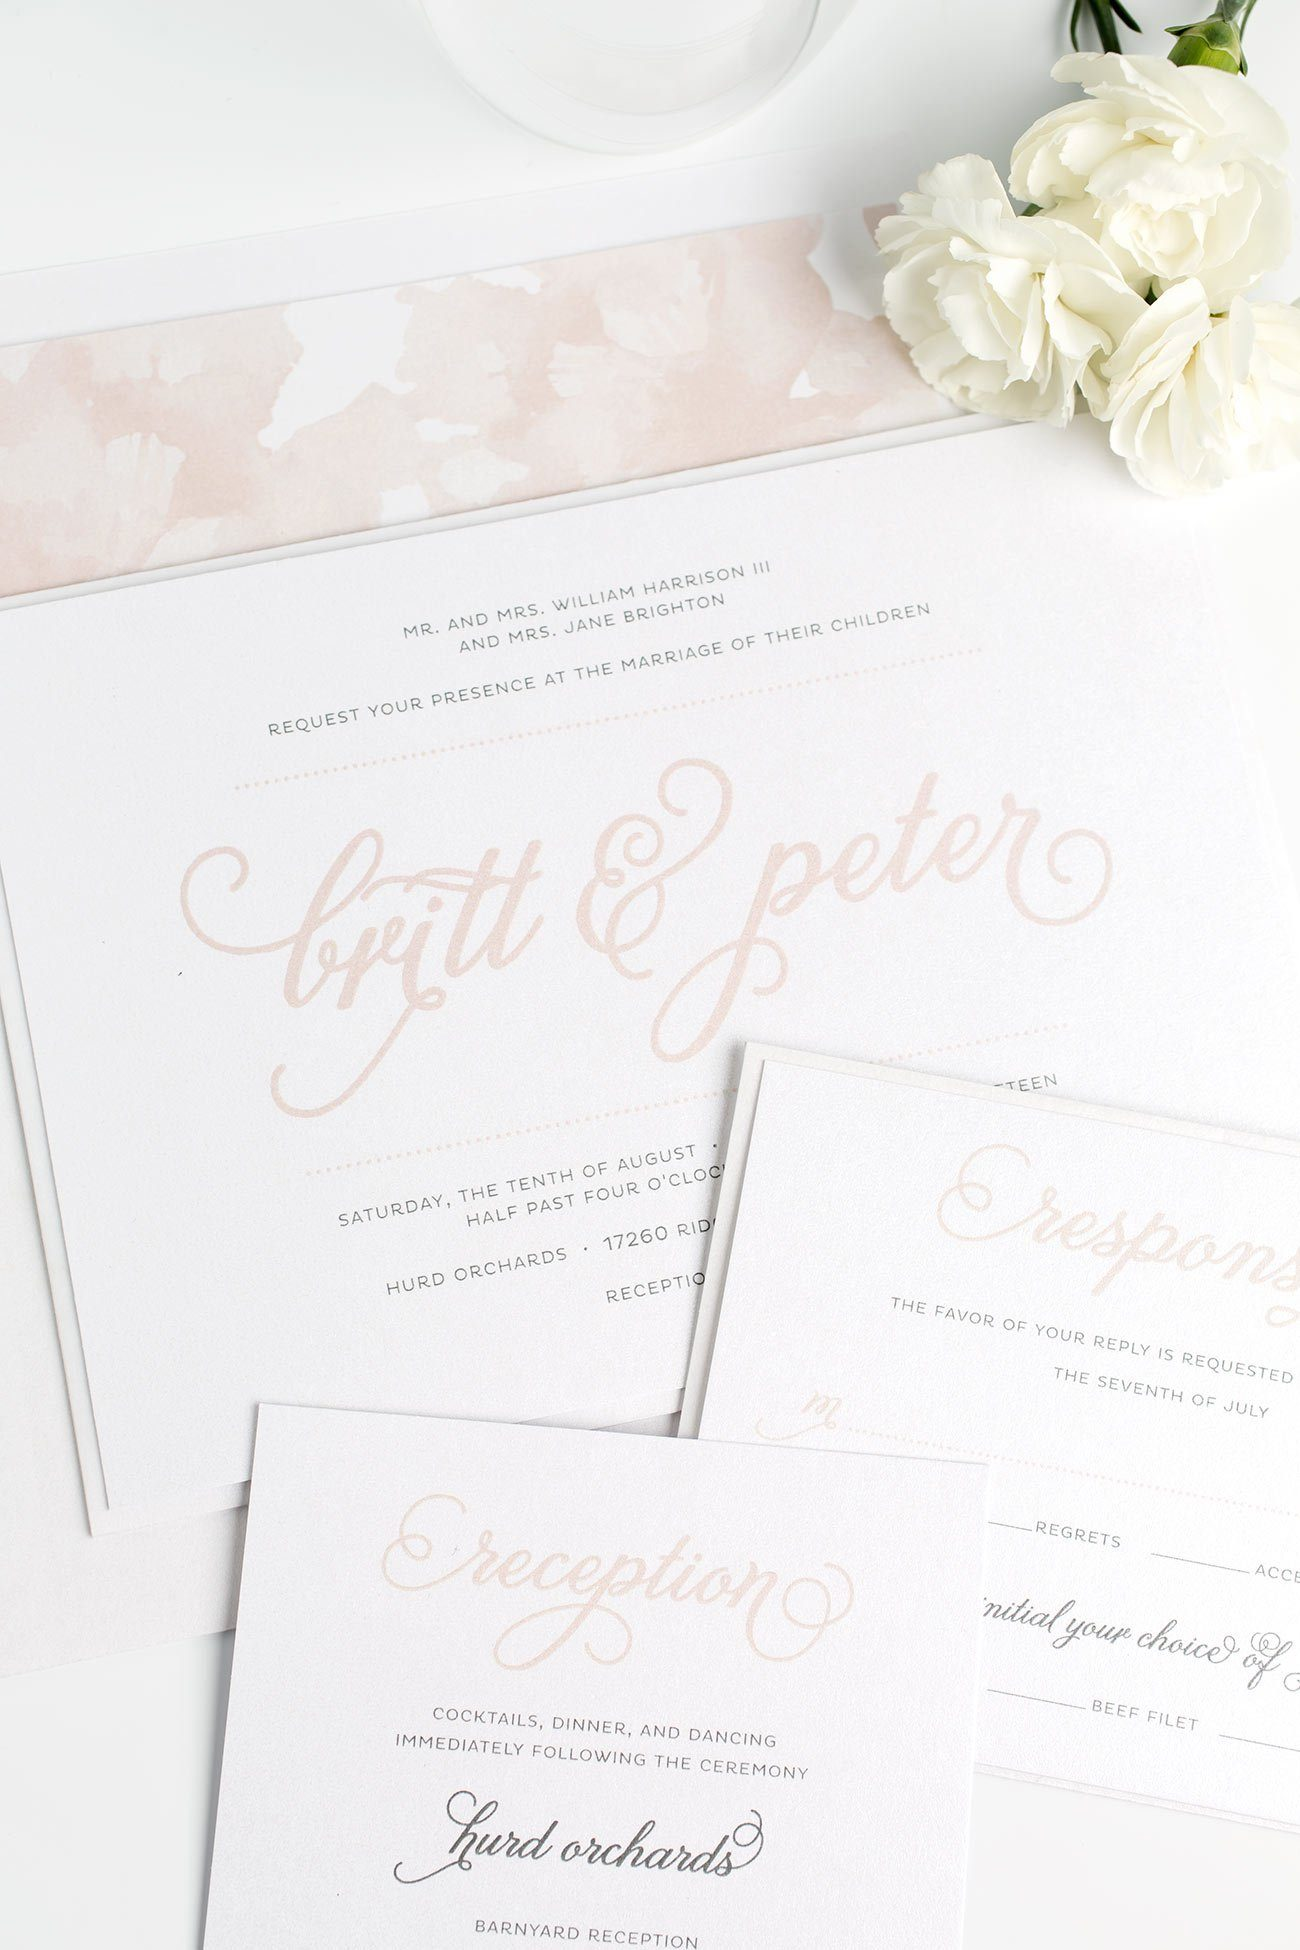 Romantic And Whimsical Wedding Invitations In Rose Gold With A Floral  Watercolor Envelope Liner ...